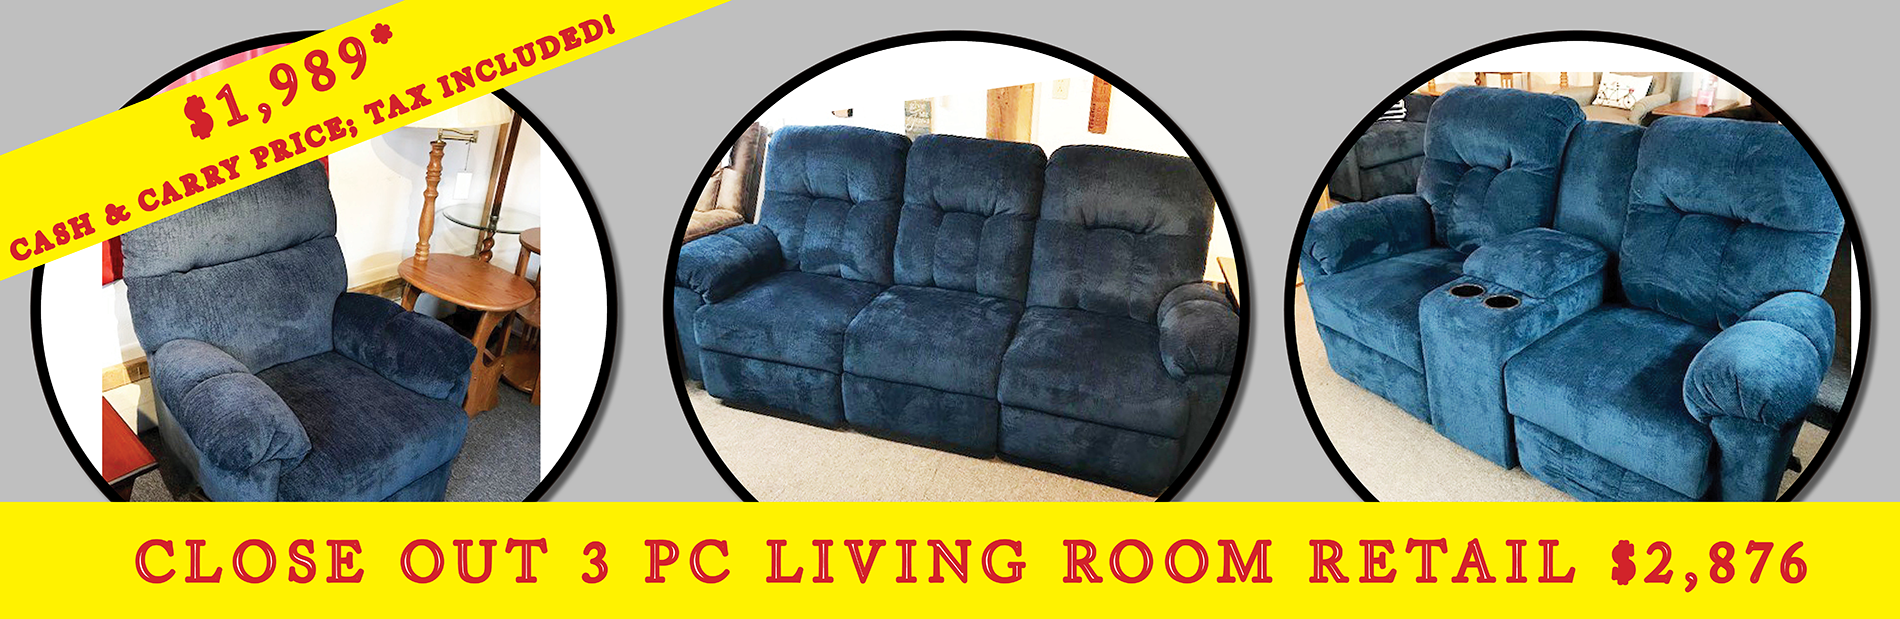 3 Piece Living Room Set Sale